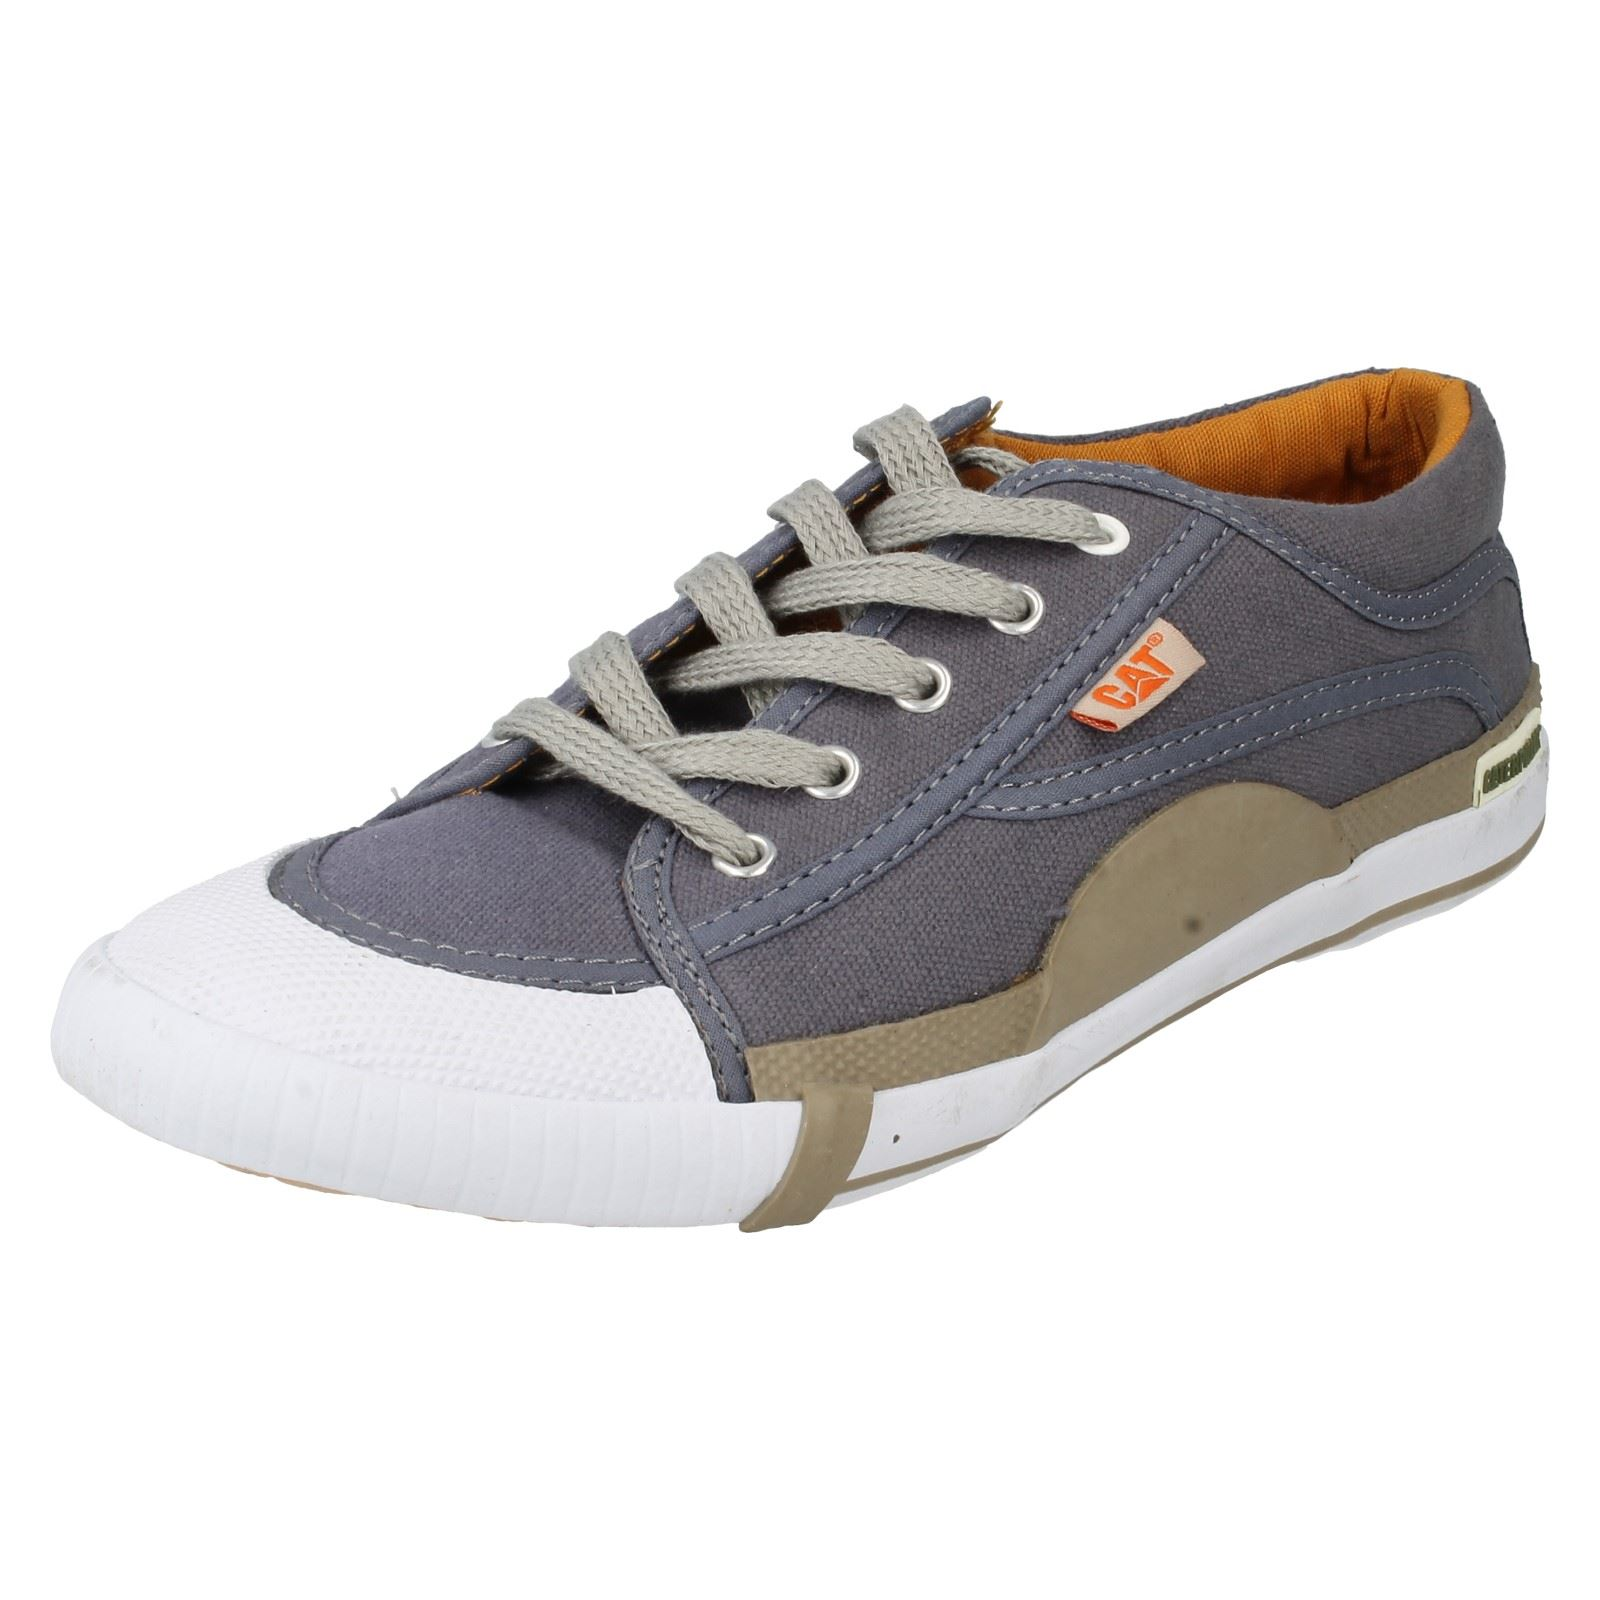 caterpillar lace up canvas shoes the style rendez